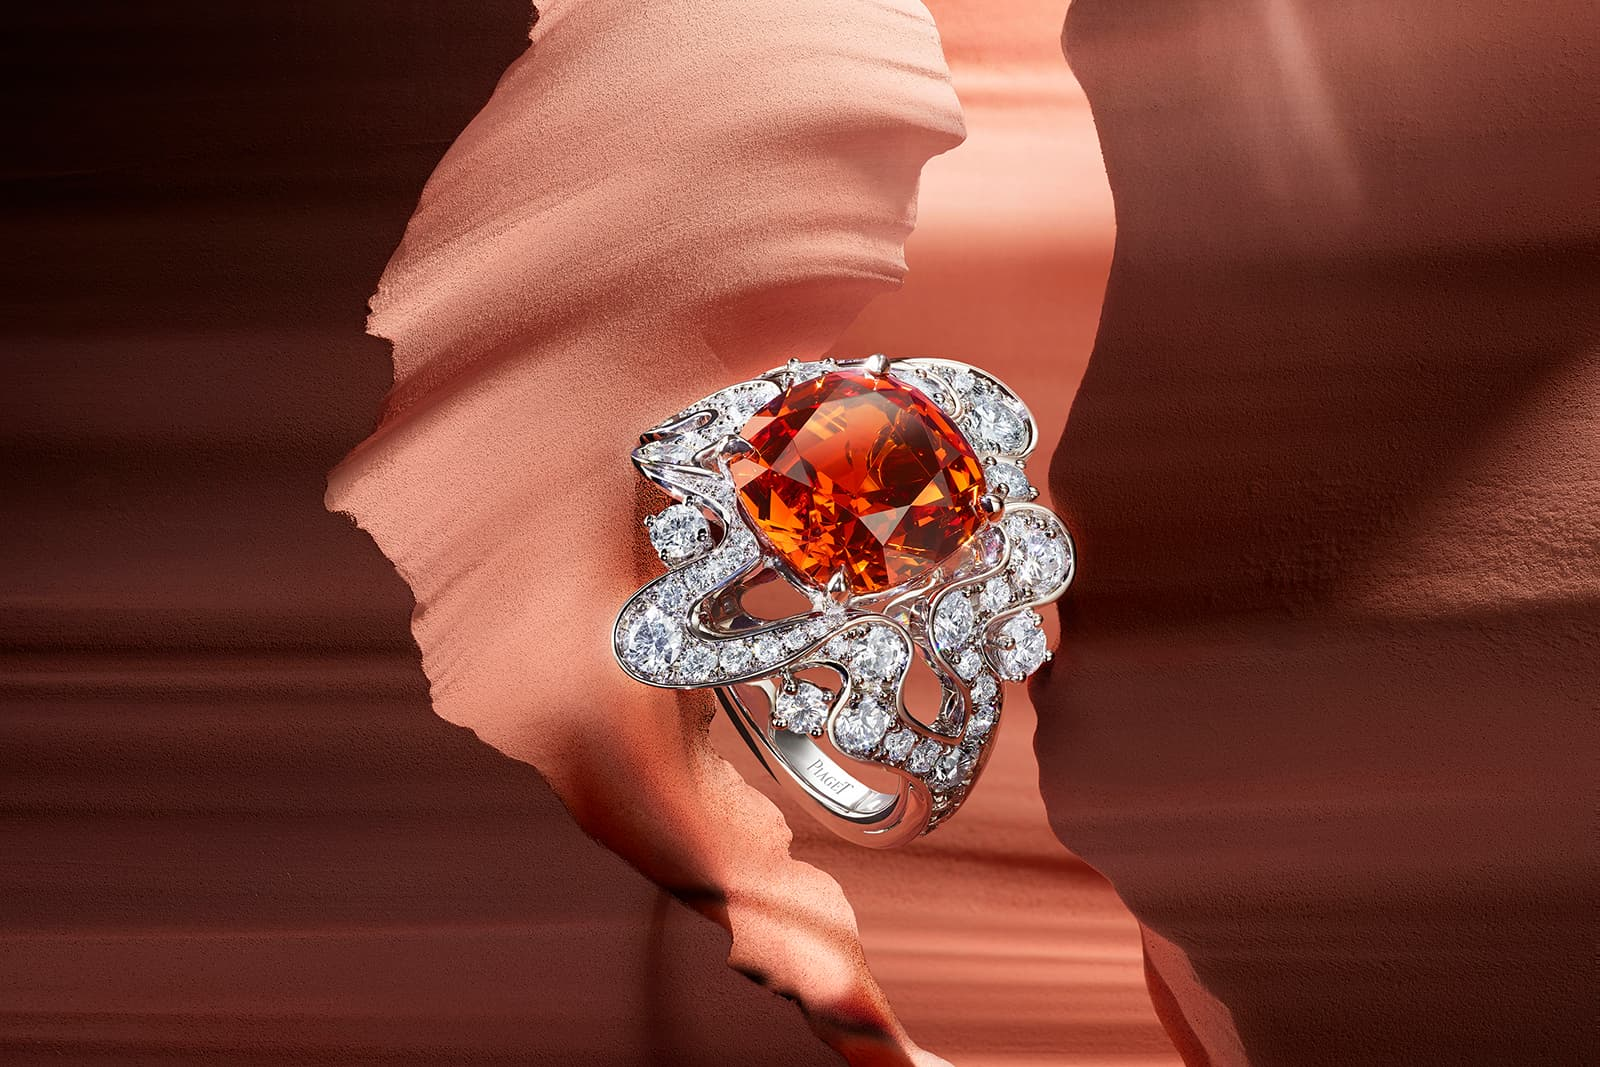 Piaget 'Irresistible Attraction' ring with spessartite garnet and diamonds in white gold